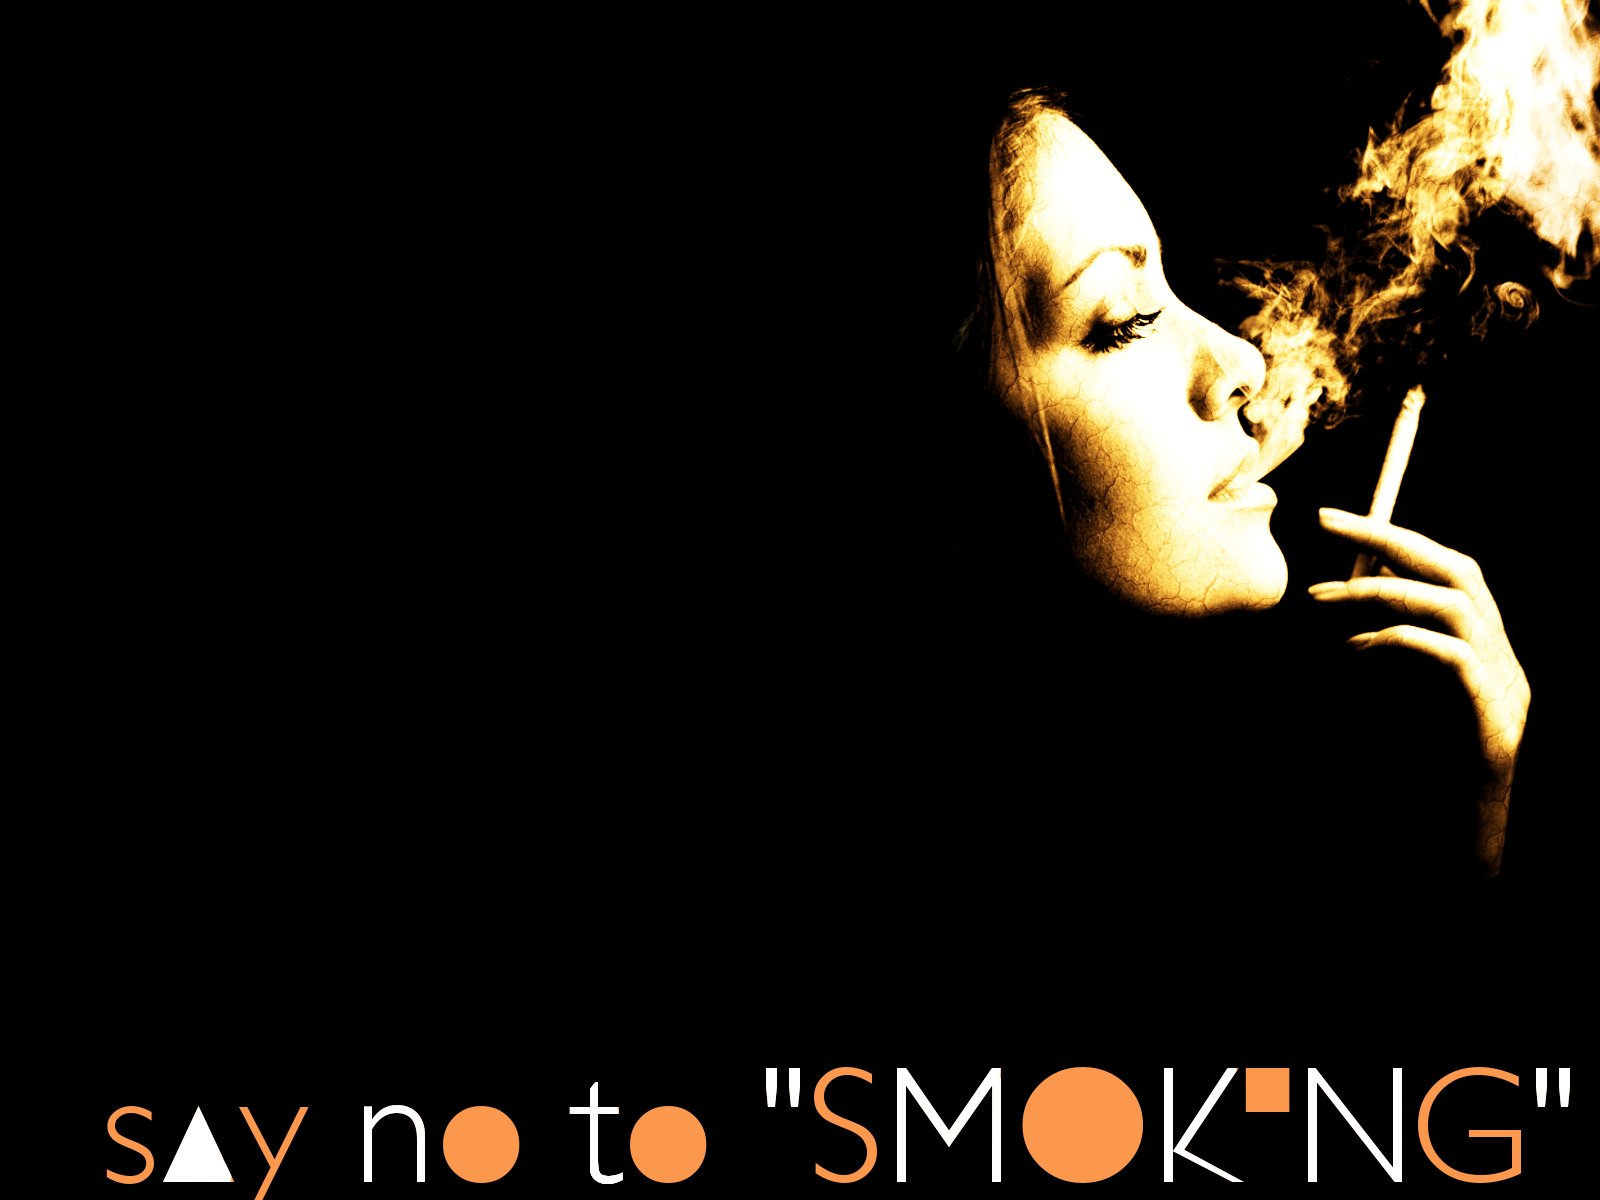 No Smoking Wallpapers No Smoking Images for Windows and 1600x1200